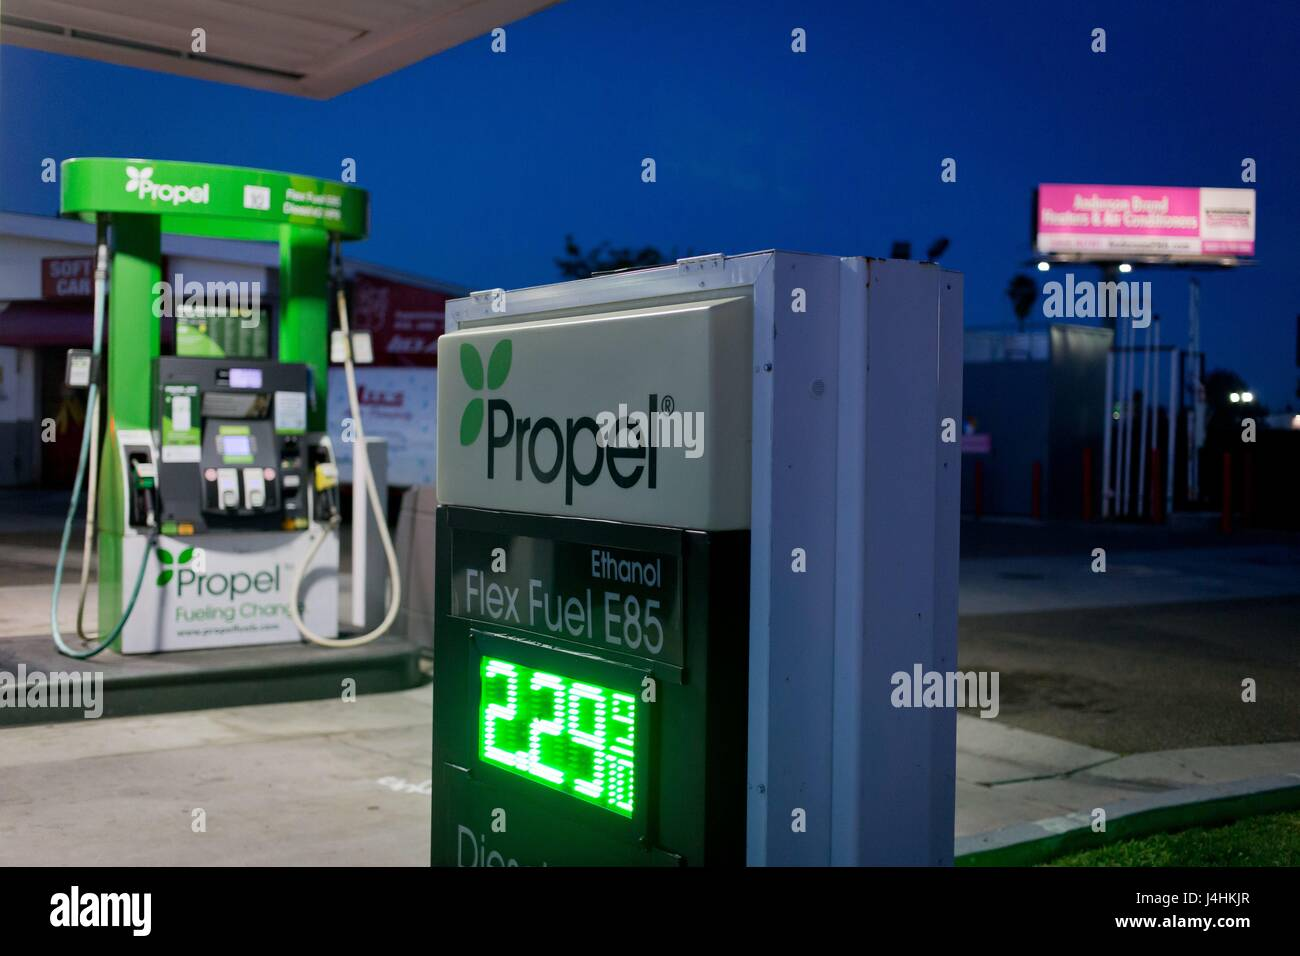 Flex Fuel Gas Stations >> Propel Gas Station Selling Flex Fuel E85 And Diesel Hpr Aka